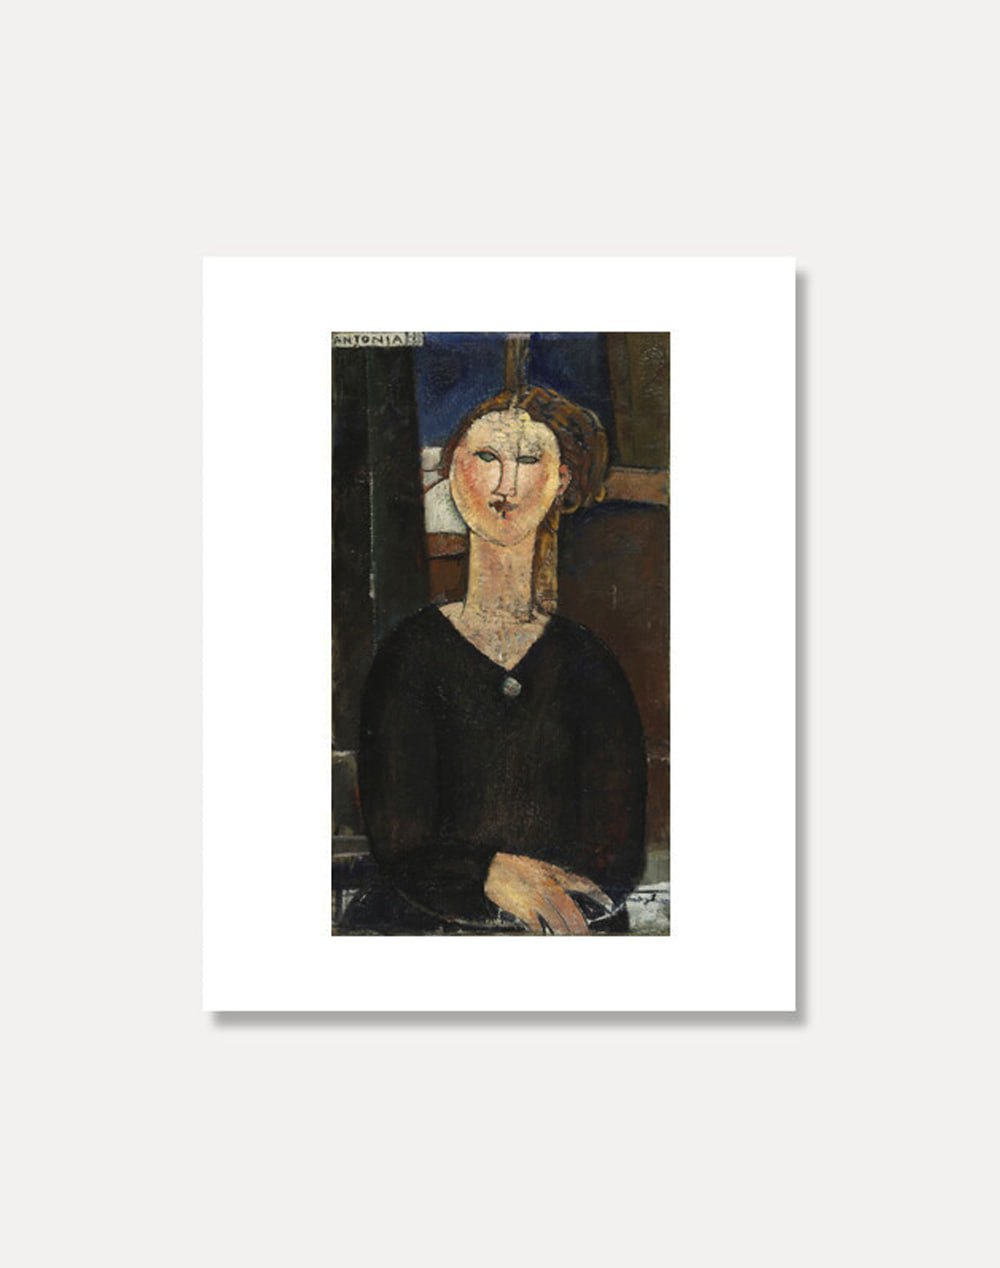 [아메데오 모딜라니]AMEDEO MODIGLIANI ― Antonia 20 x 25.5 cm